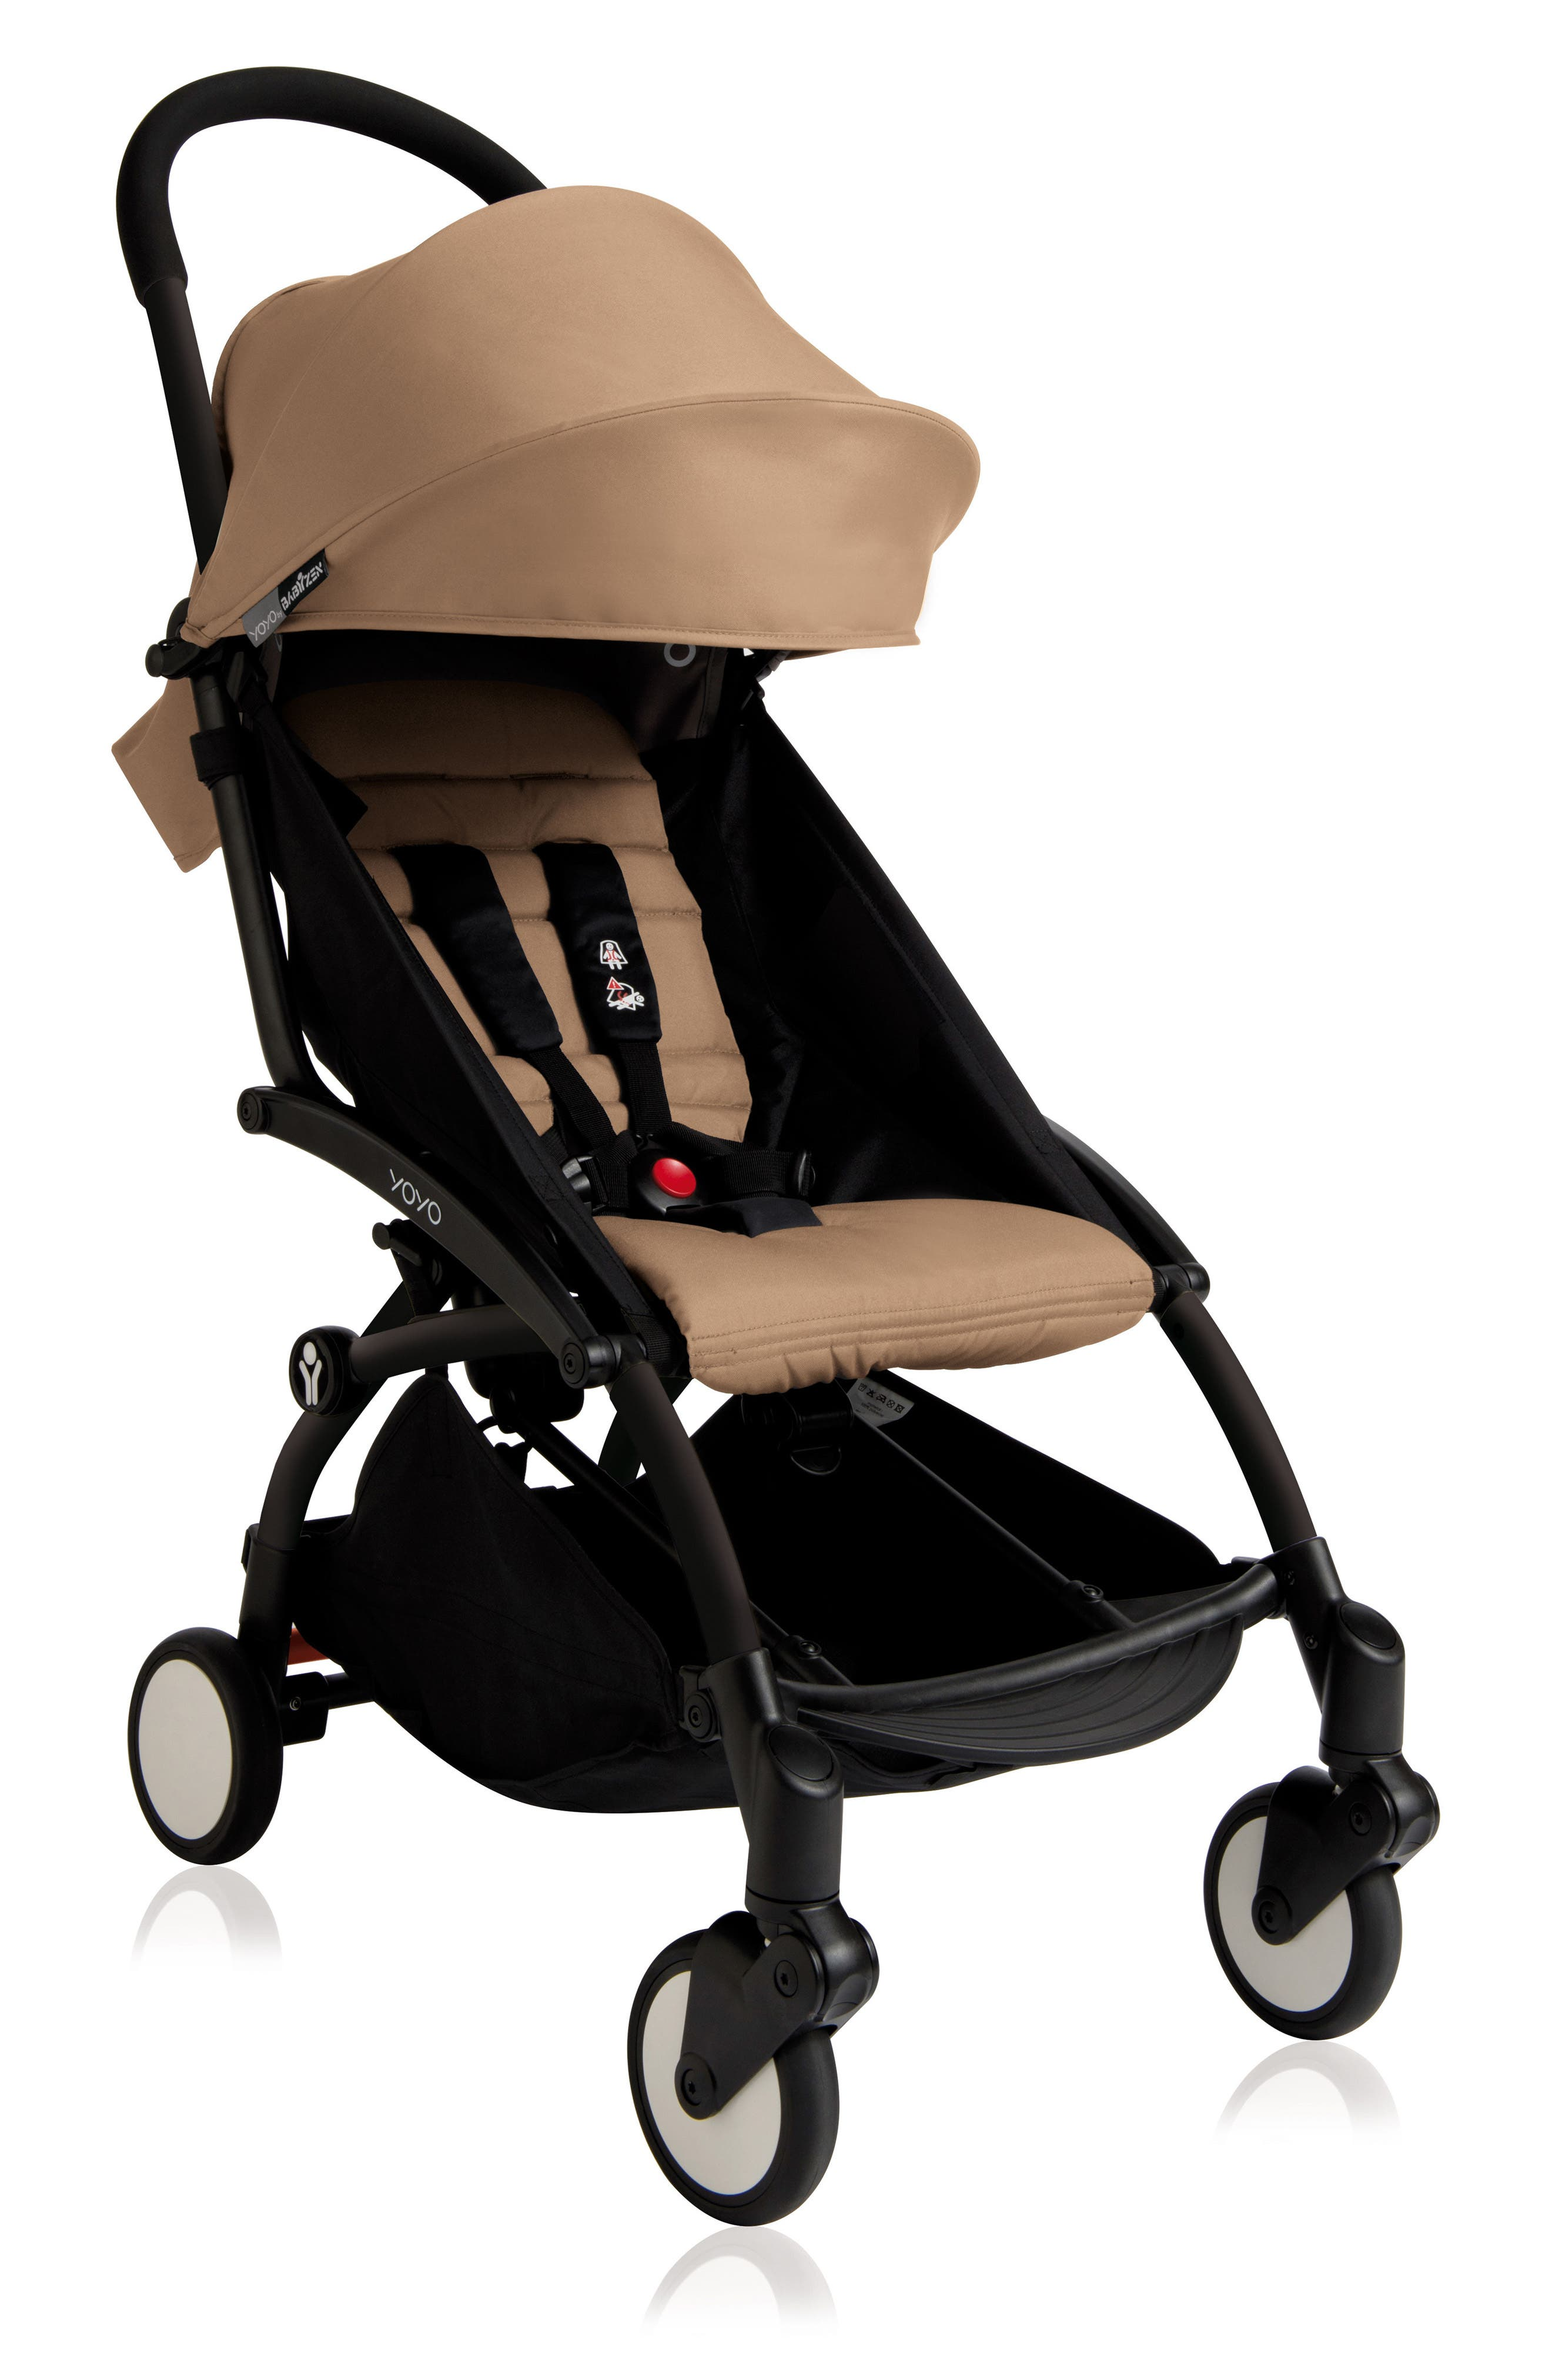 Infant Babyzen(TM) Yoyo Complete Stroller With Travel Bag Black Parasol  New Leg Rest Size One Size  Beige